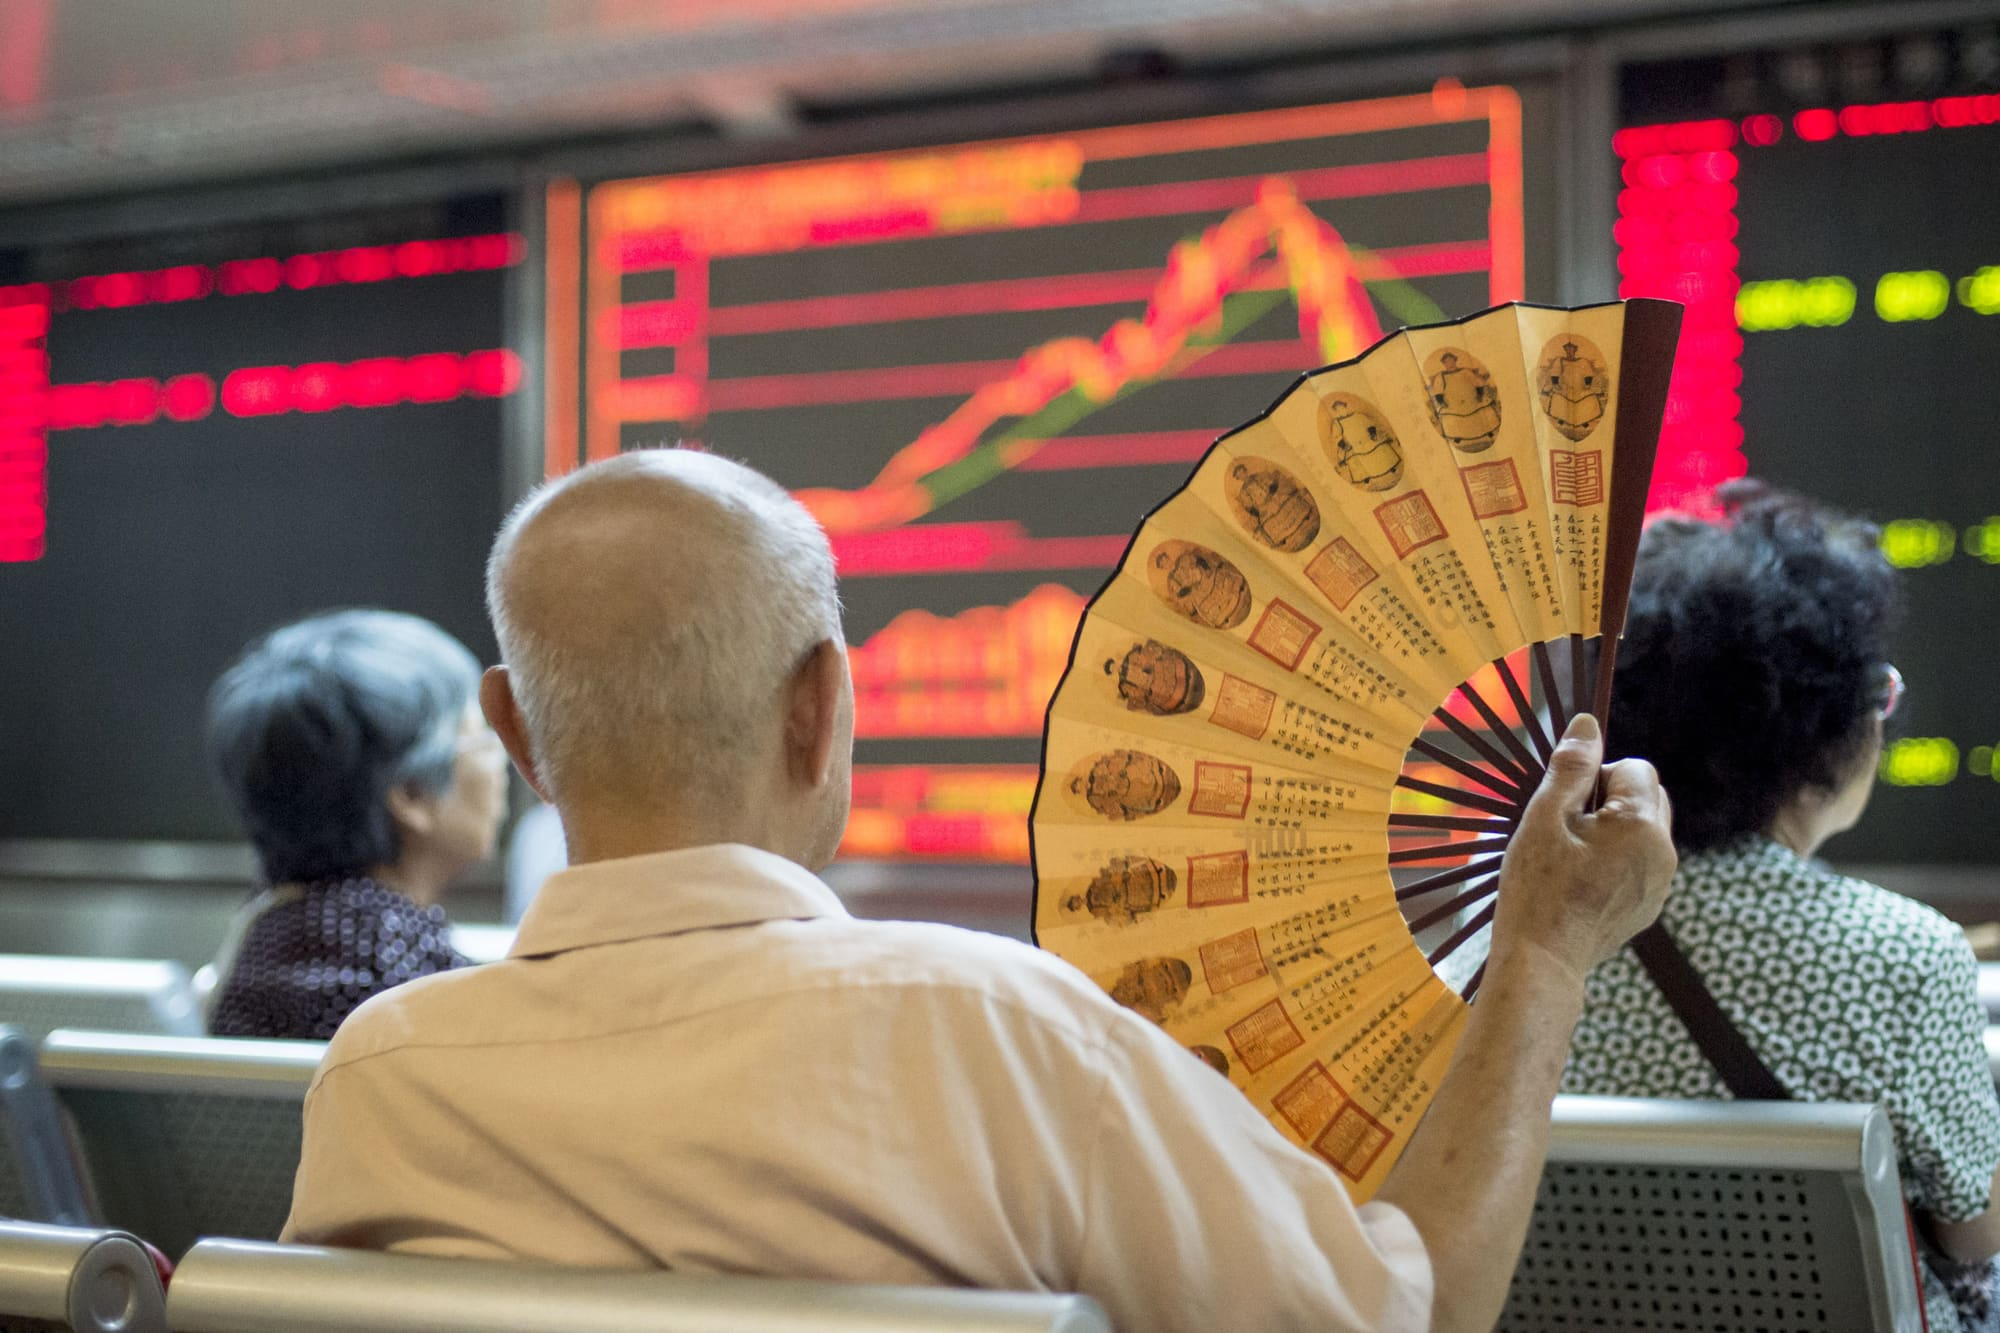 China's 'national team' owns 6% of stock market